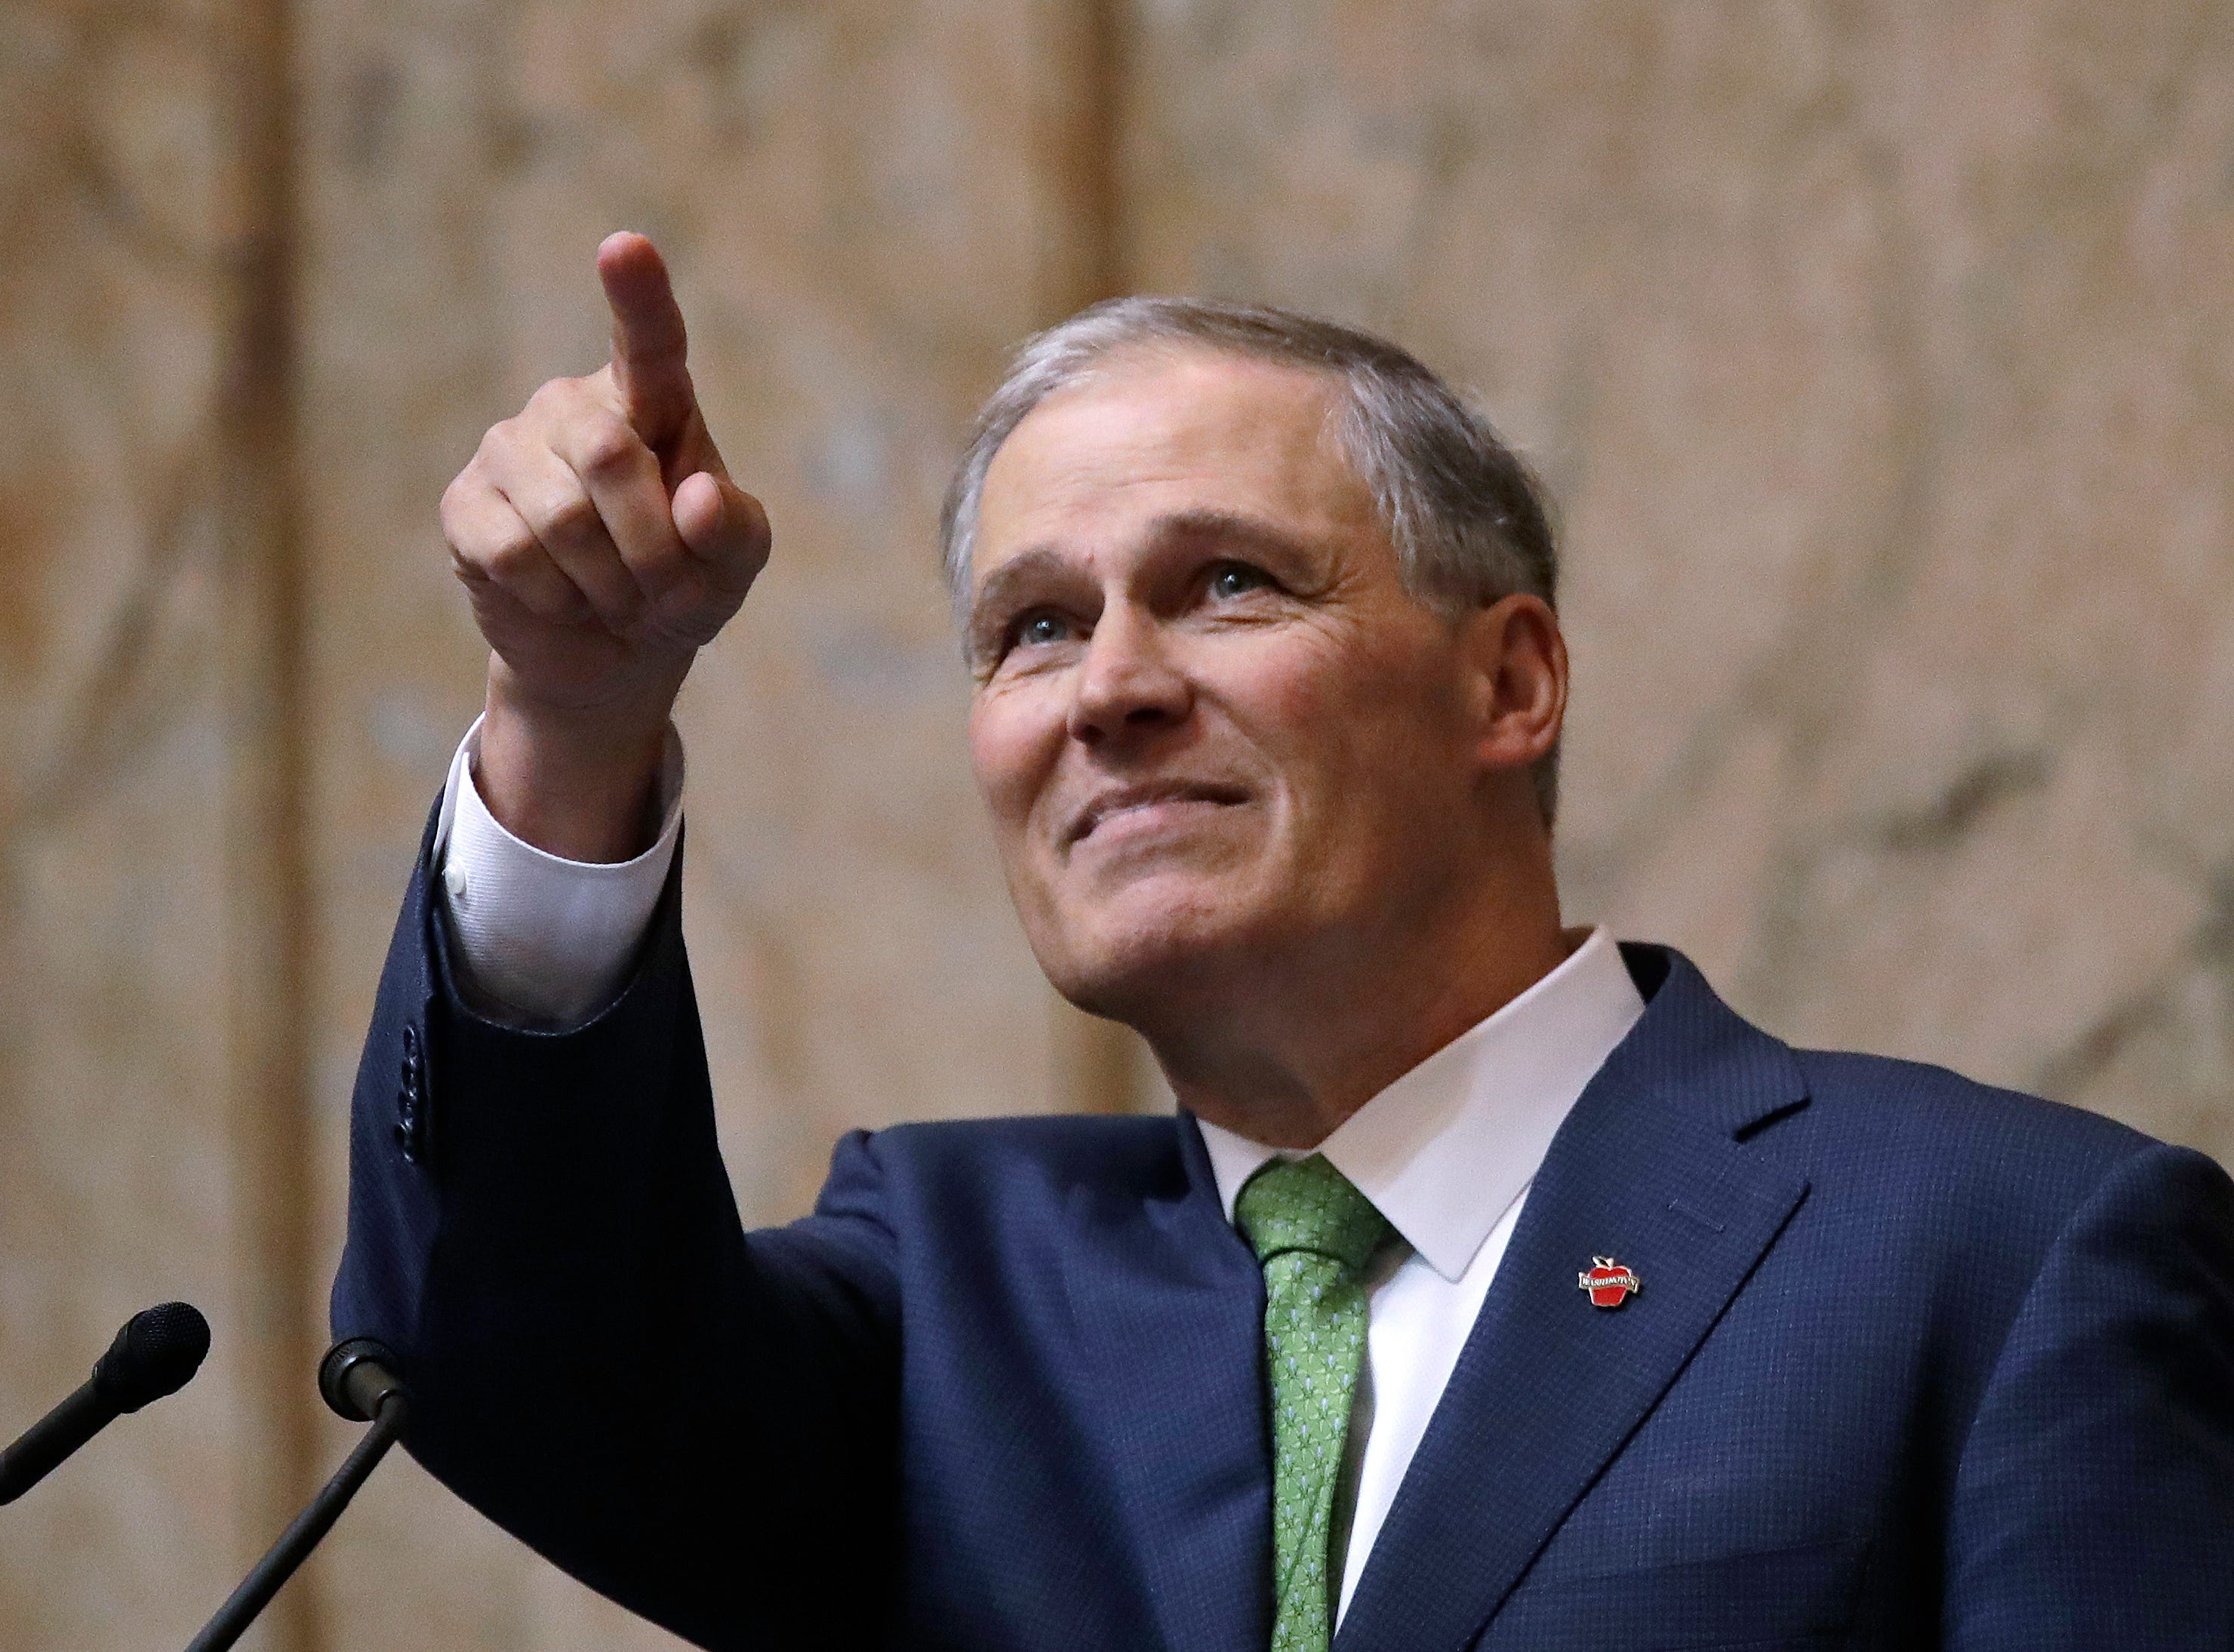 Gov. Jay Inslee points toward the gallery, where his family sat, after concluding his State of the State address Tuesday in Olympia. Inslee, who is mulling a 2020 White House bid, highlighted his clean energy agenda in the annual speech.